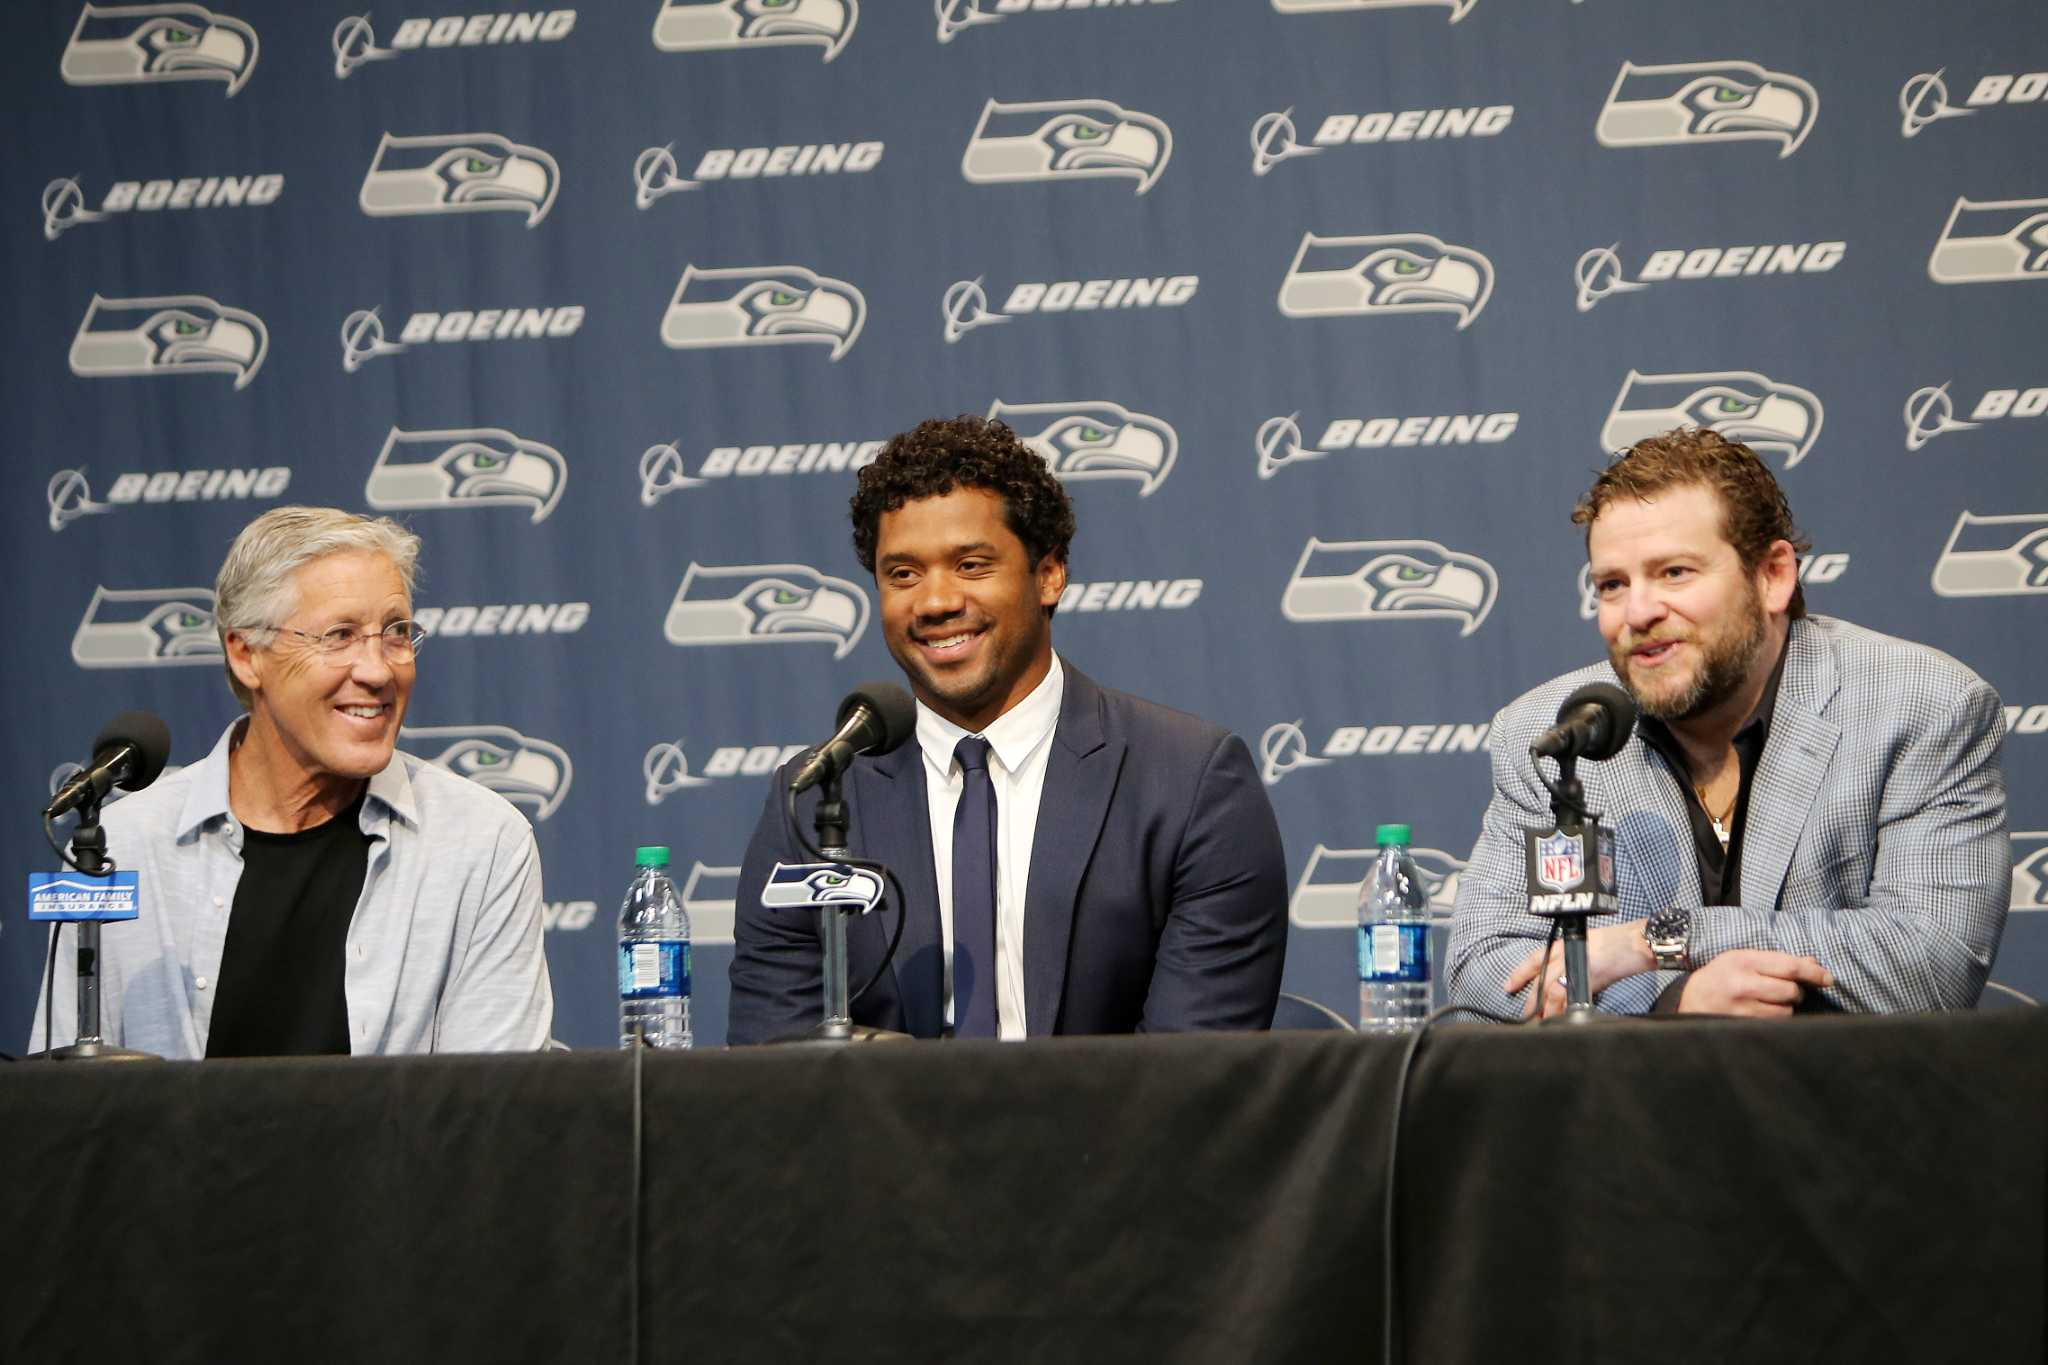 Seattle real estate is expensive -- unless you've got that Seahawks QB money